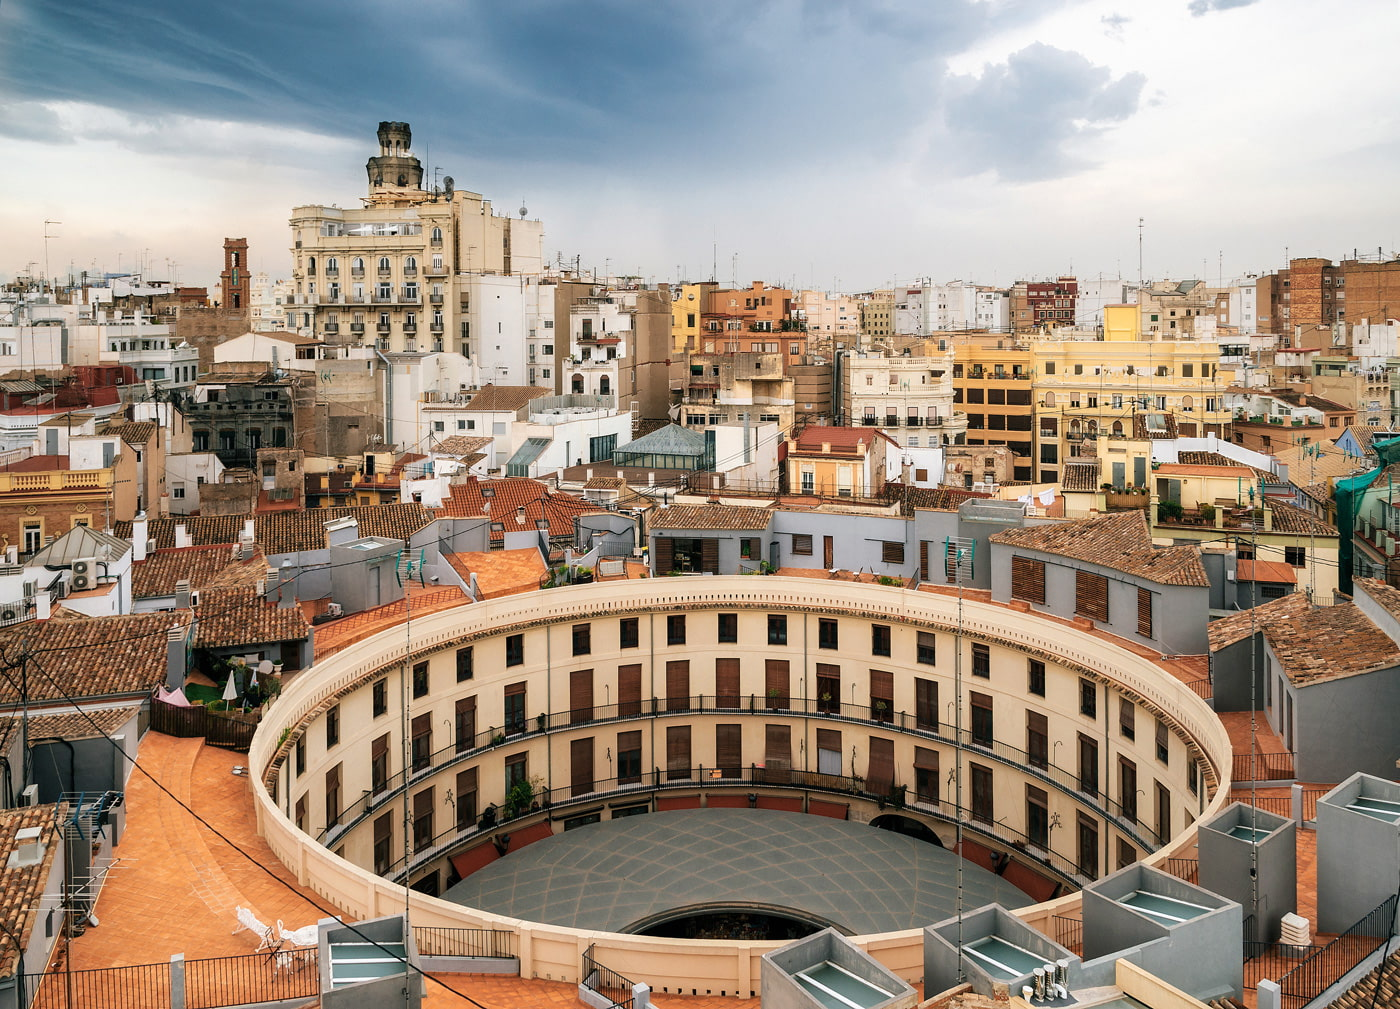 Aerial view of Plaza Redonda in Valencia